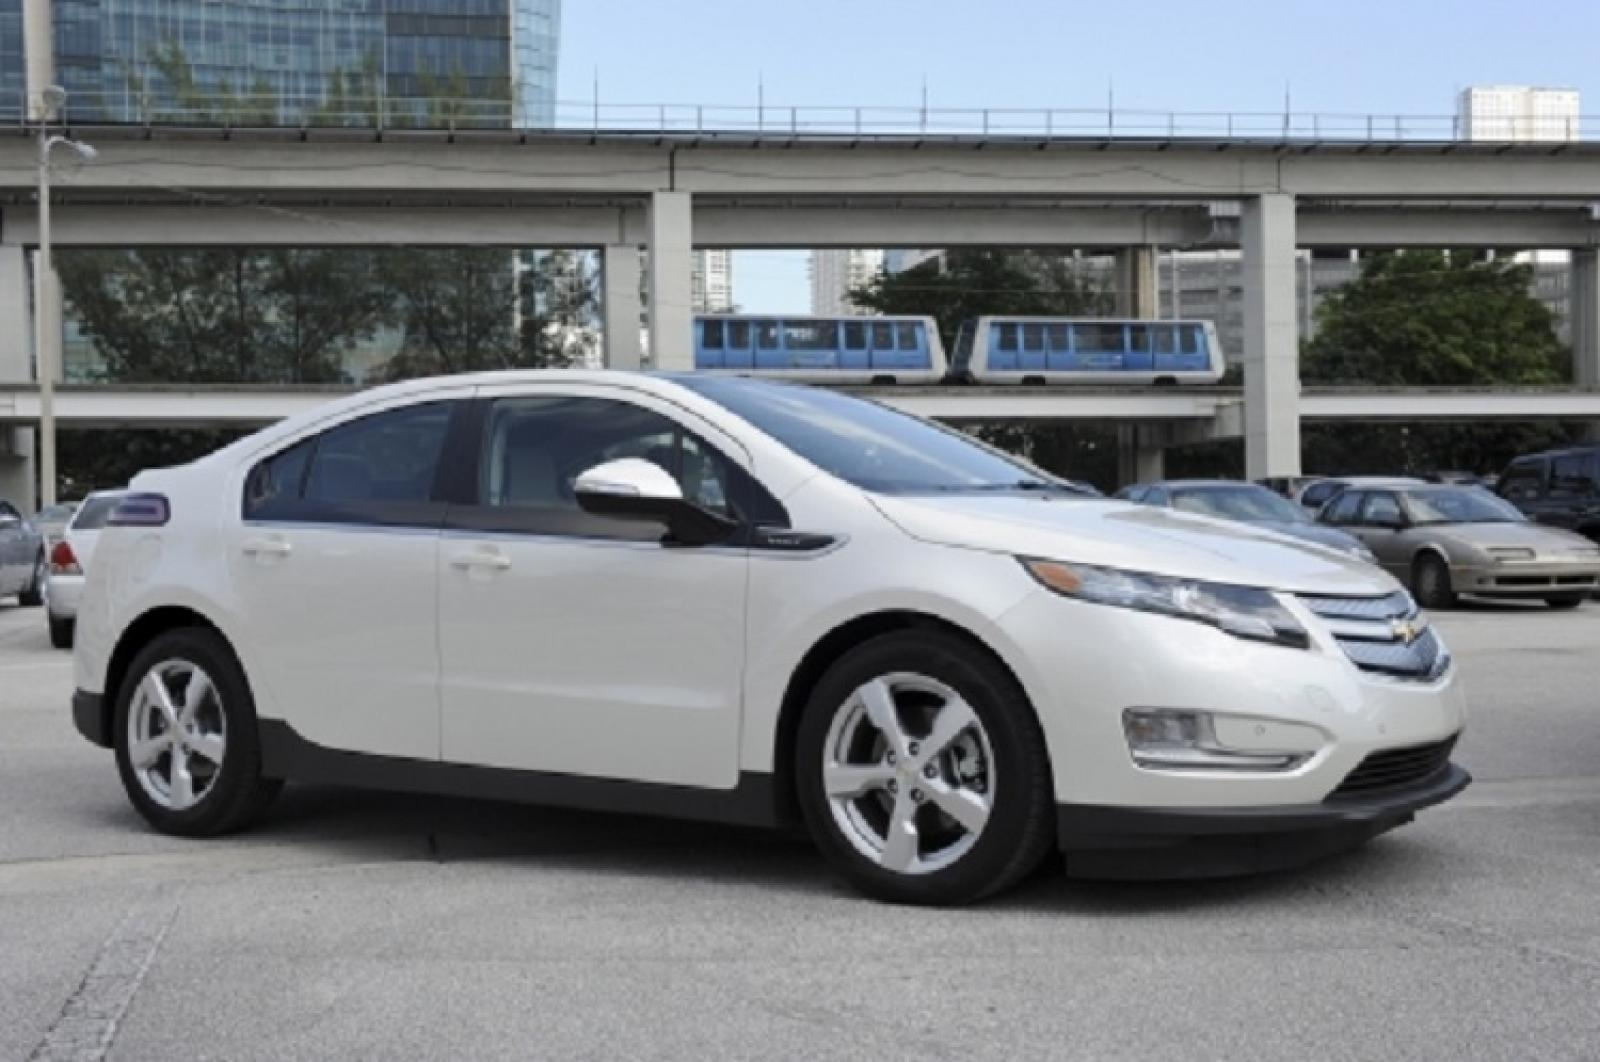 2015 Chevrolet Volt Information And Photos Zombiedrive Chevy Crossover 5 800 1024 1280 1600 Origin